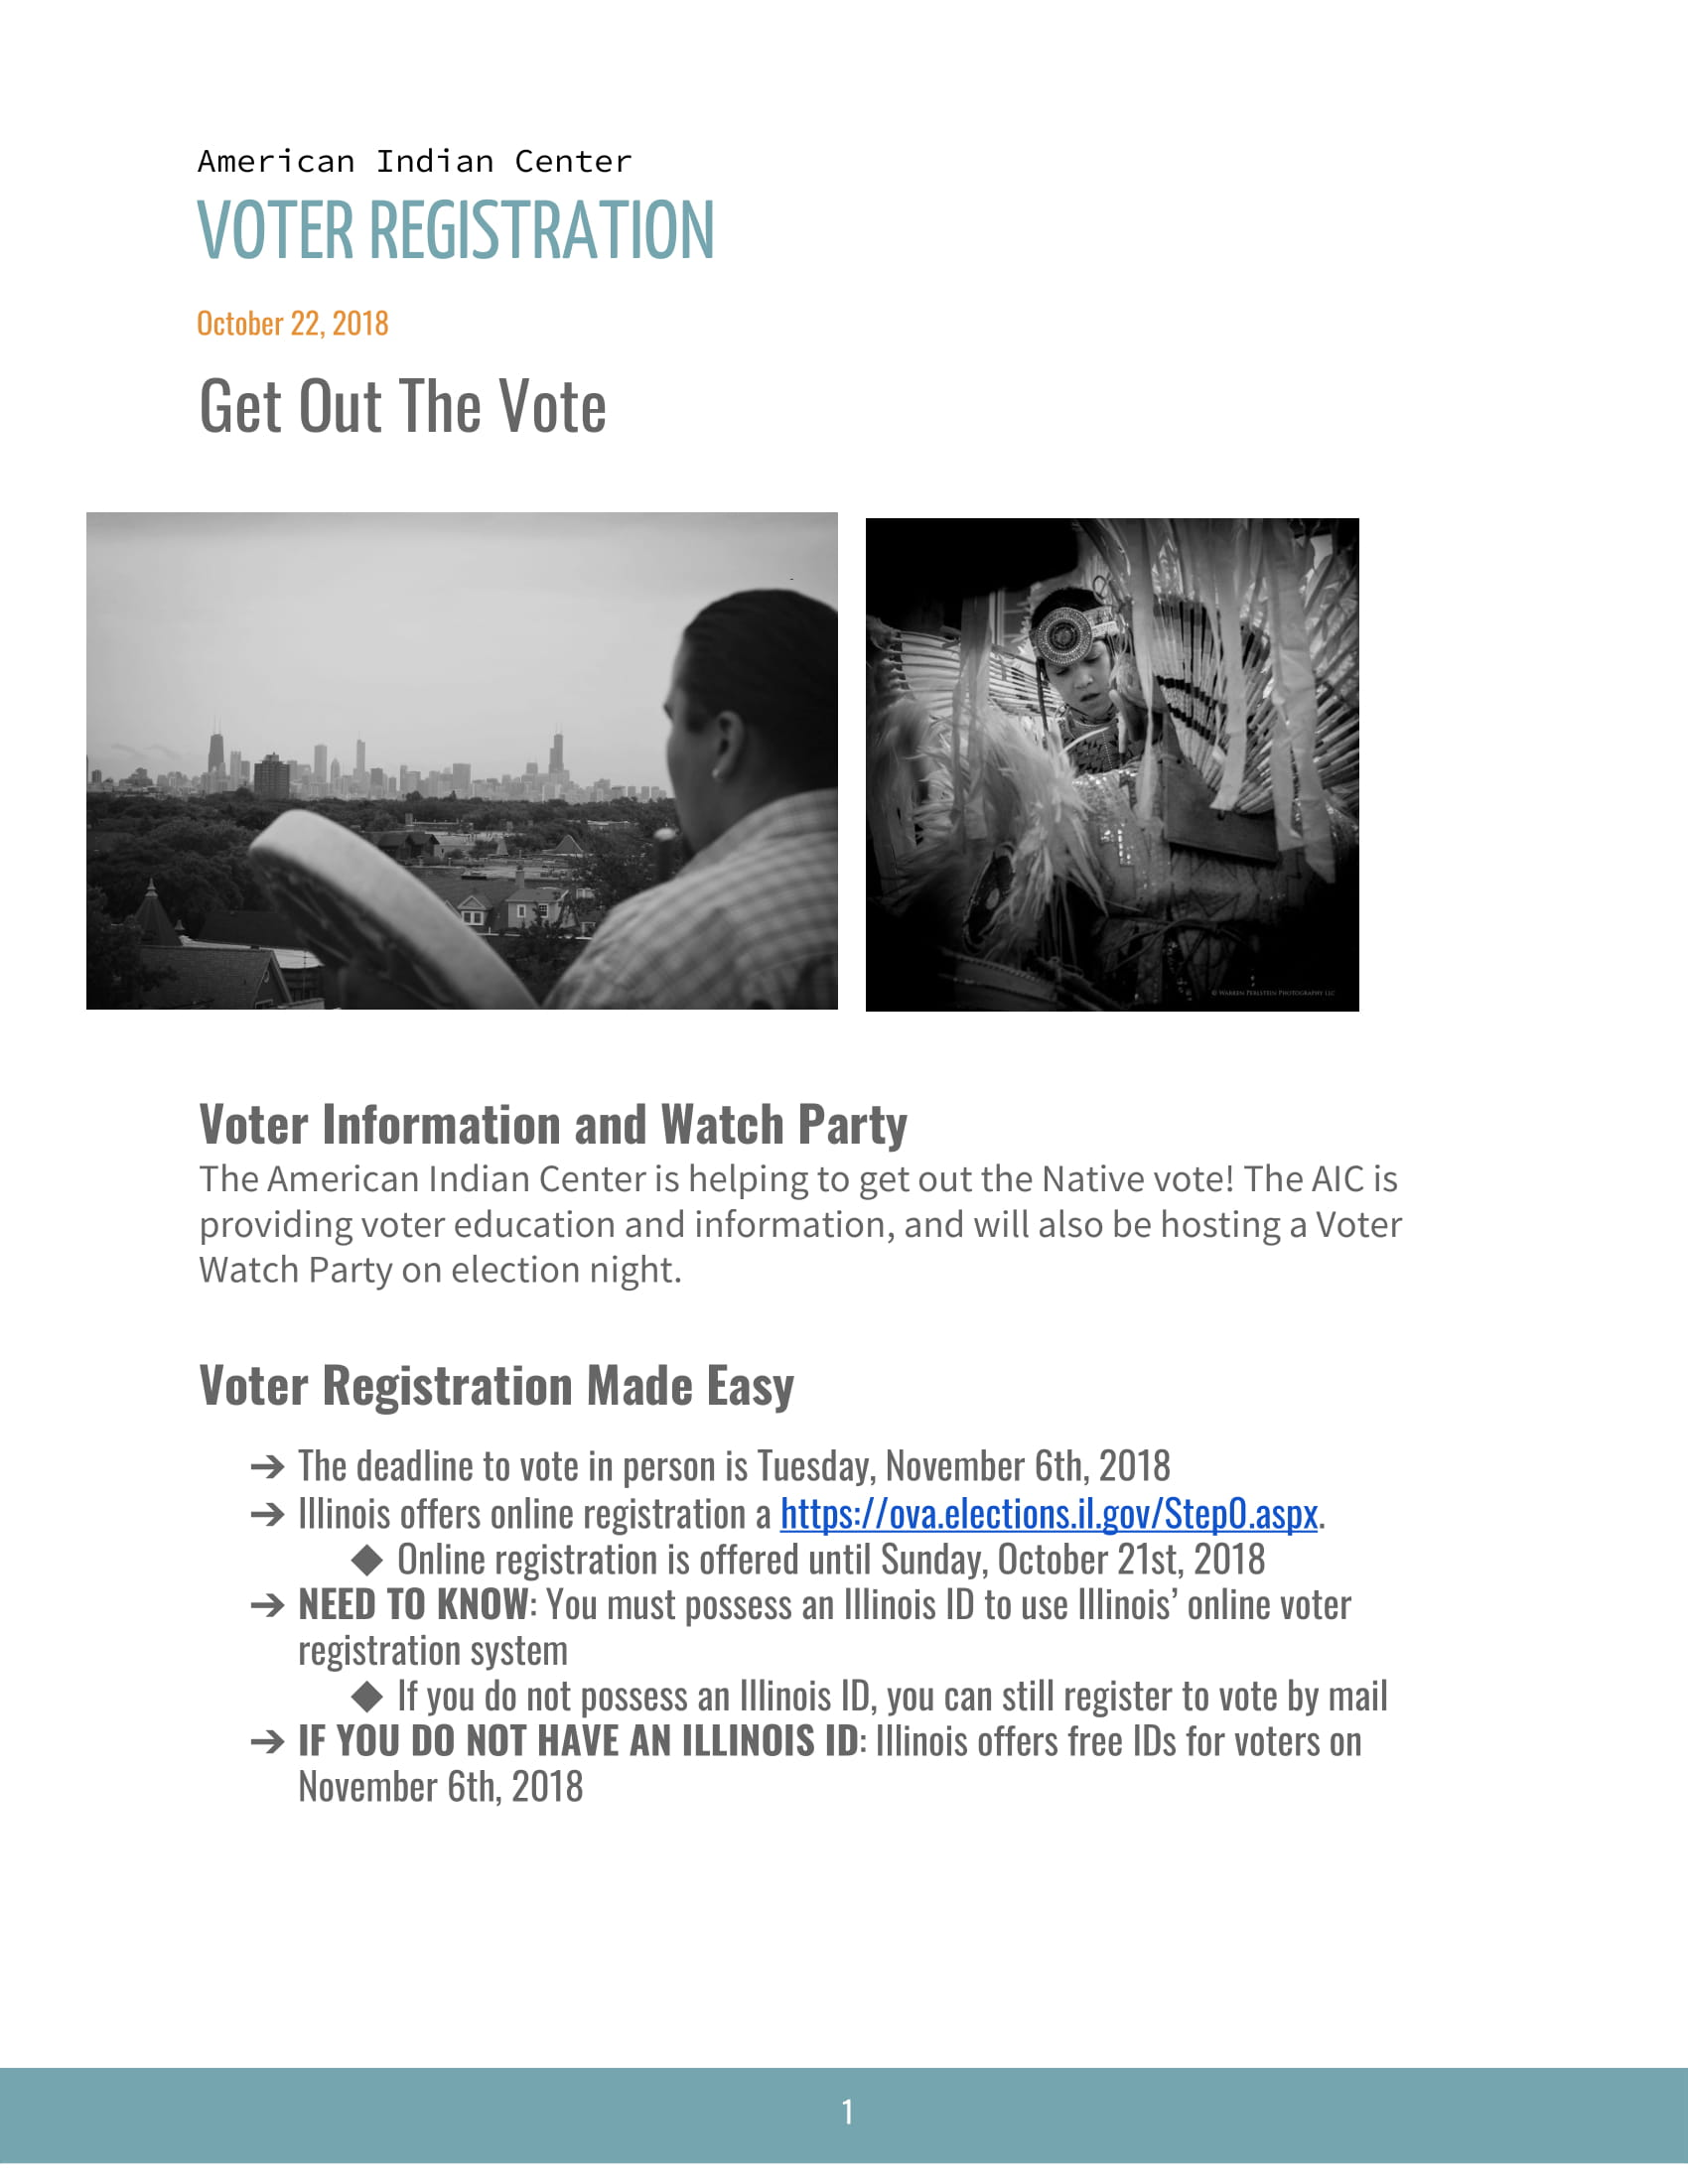 AIC Voter Registration Newsletter-1.jpg